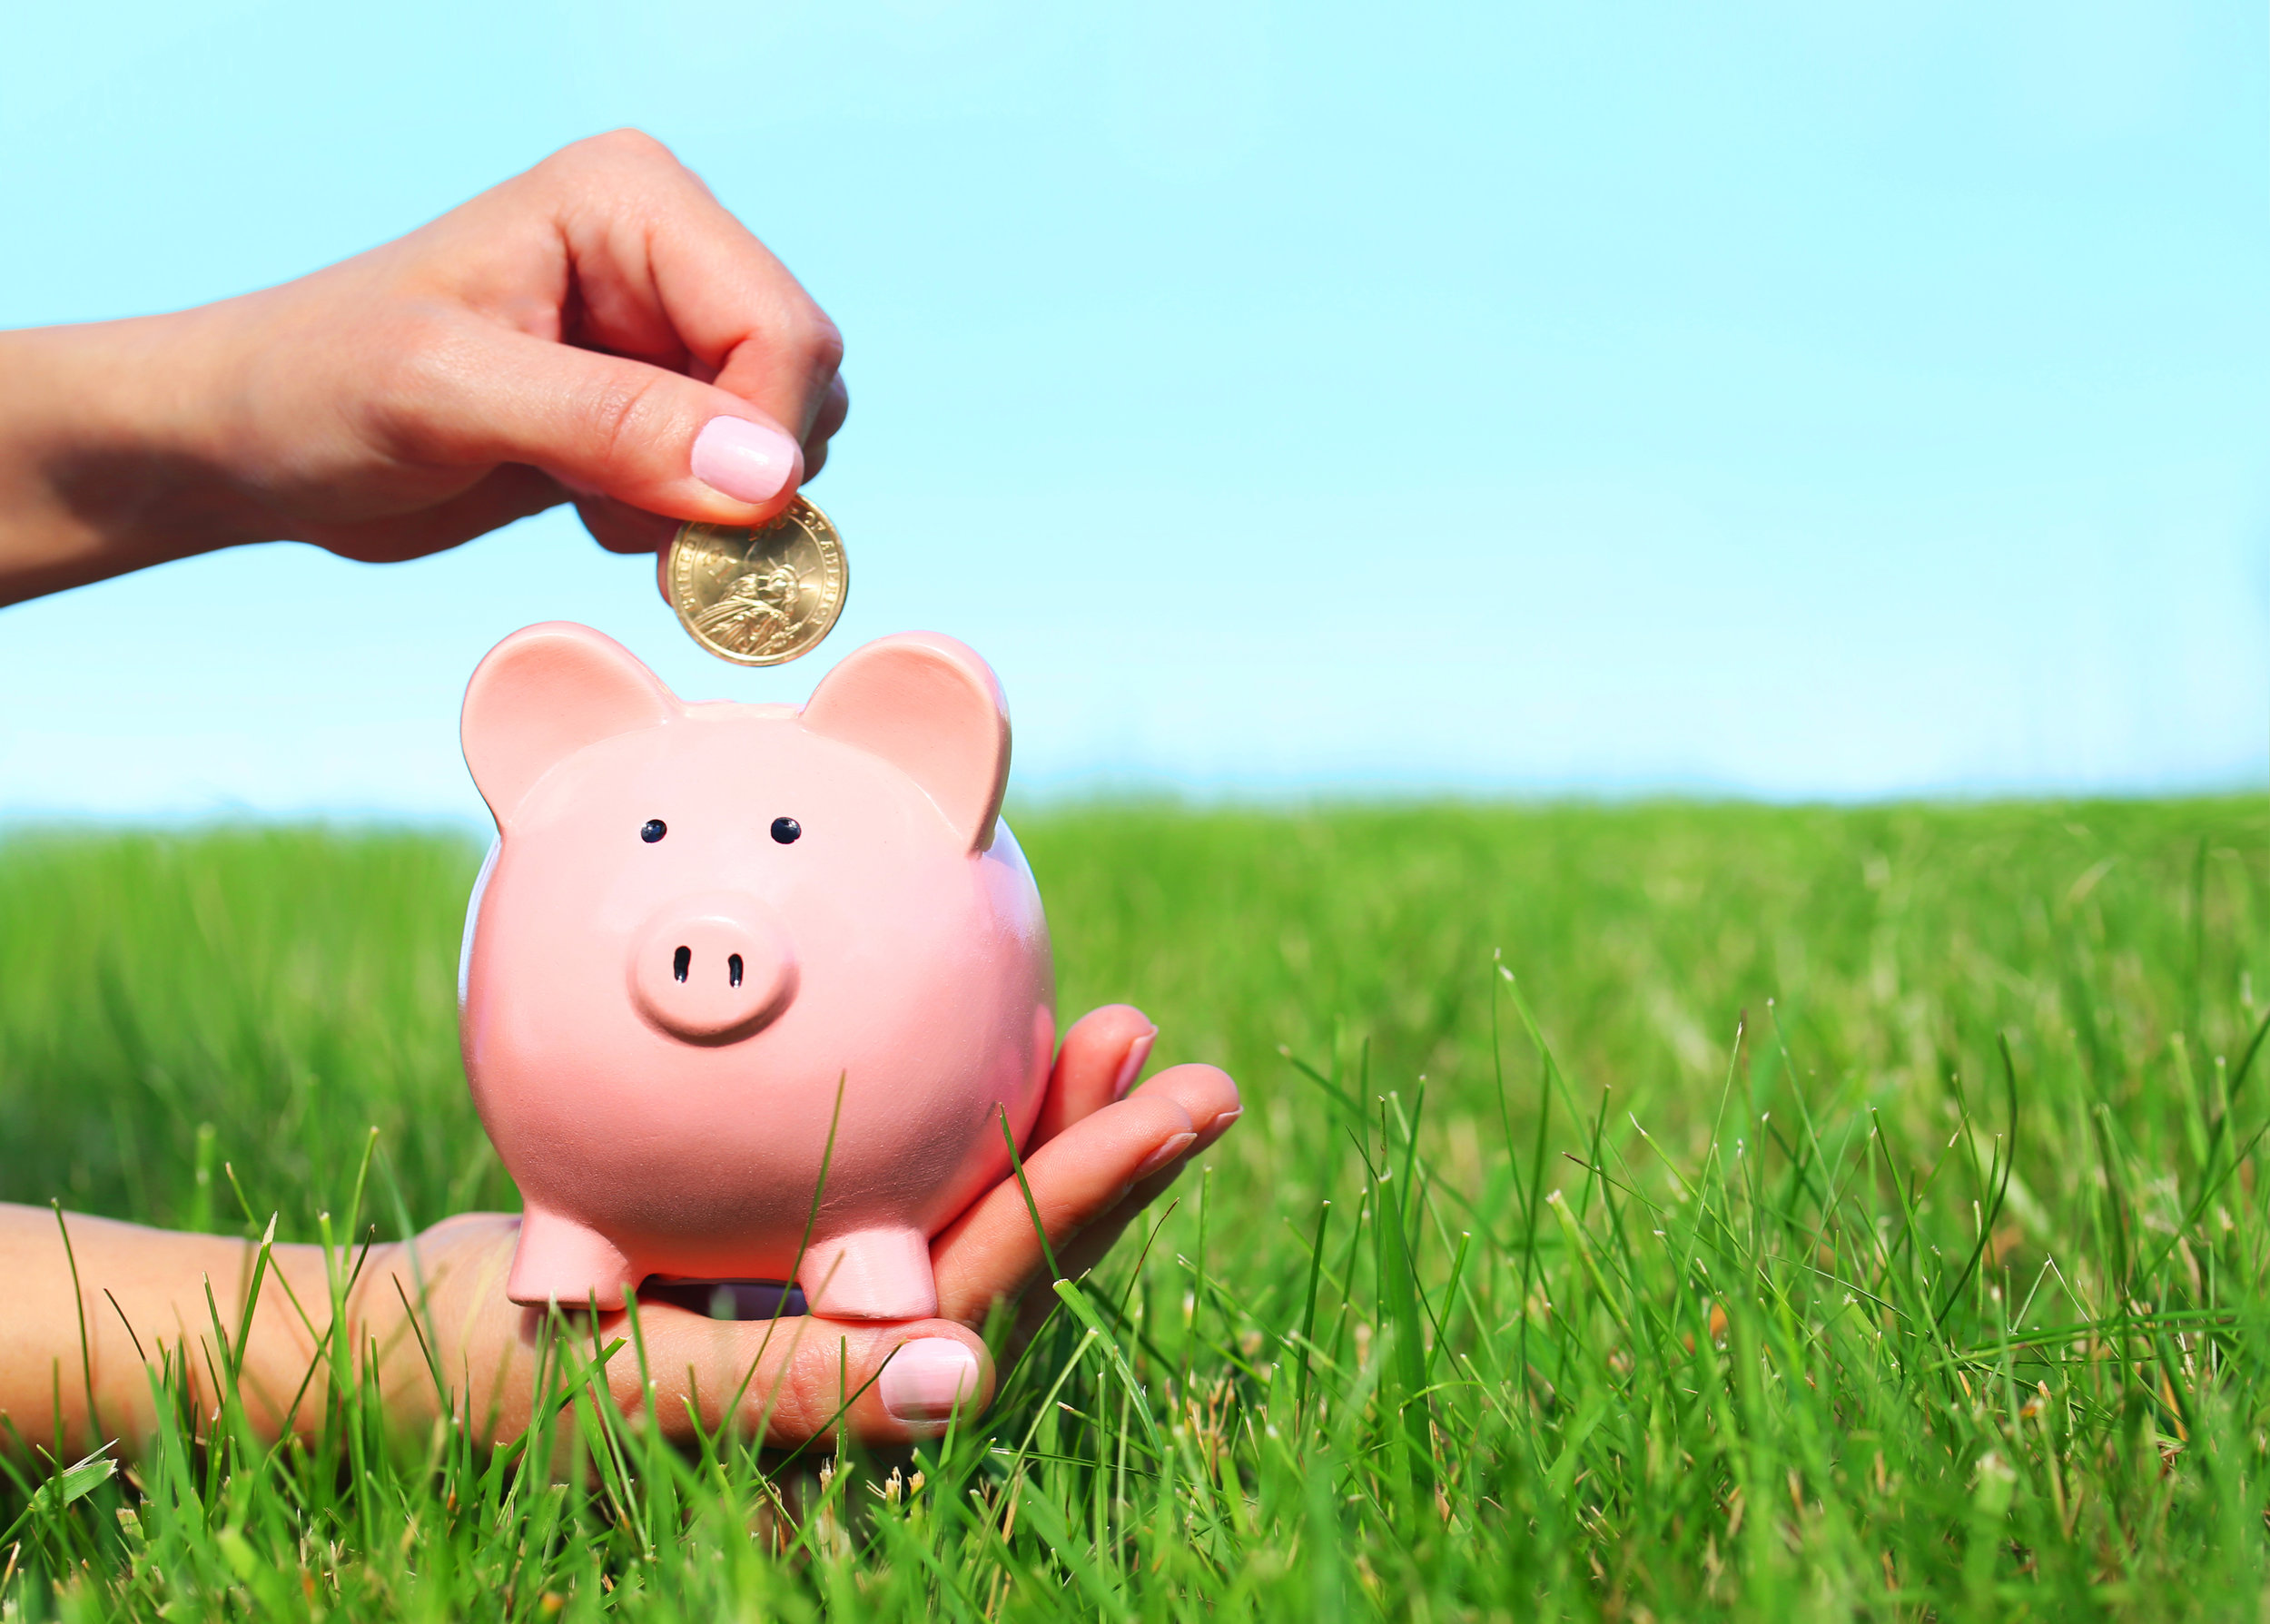 Are you worried about saving money this summer? - Stop worrying and just call Five Star Today!